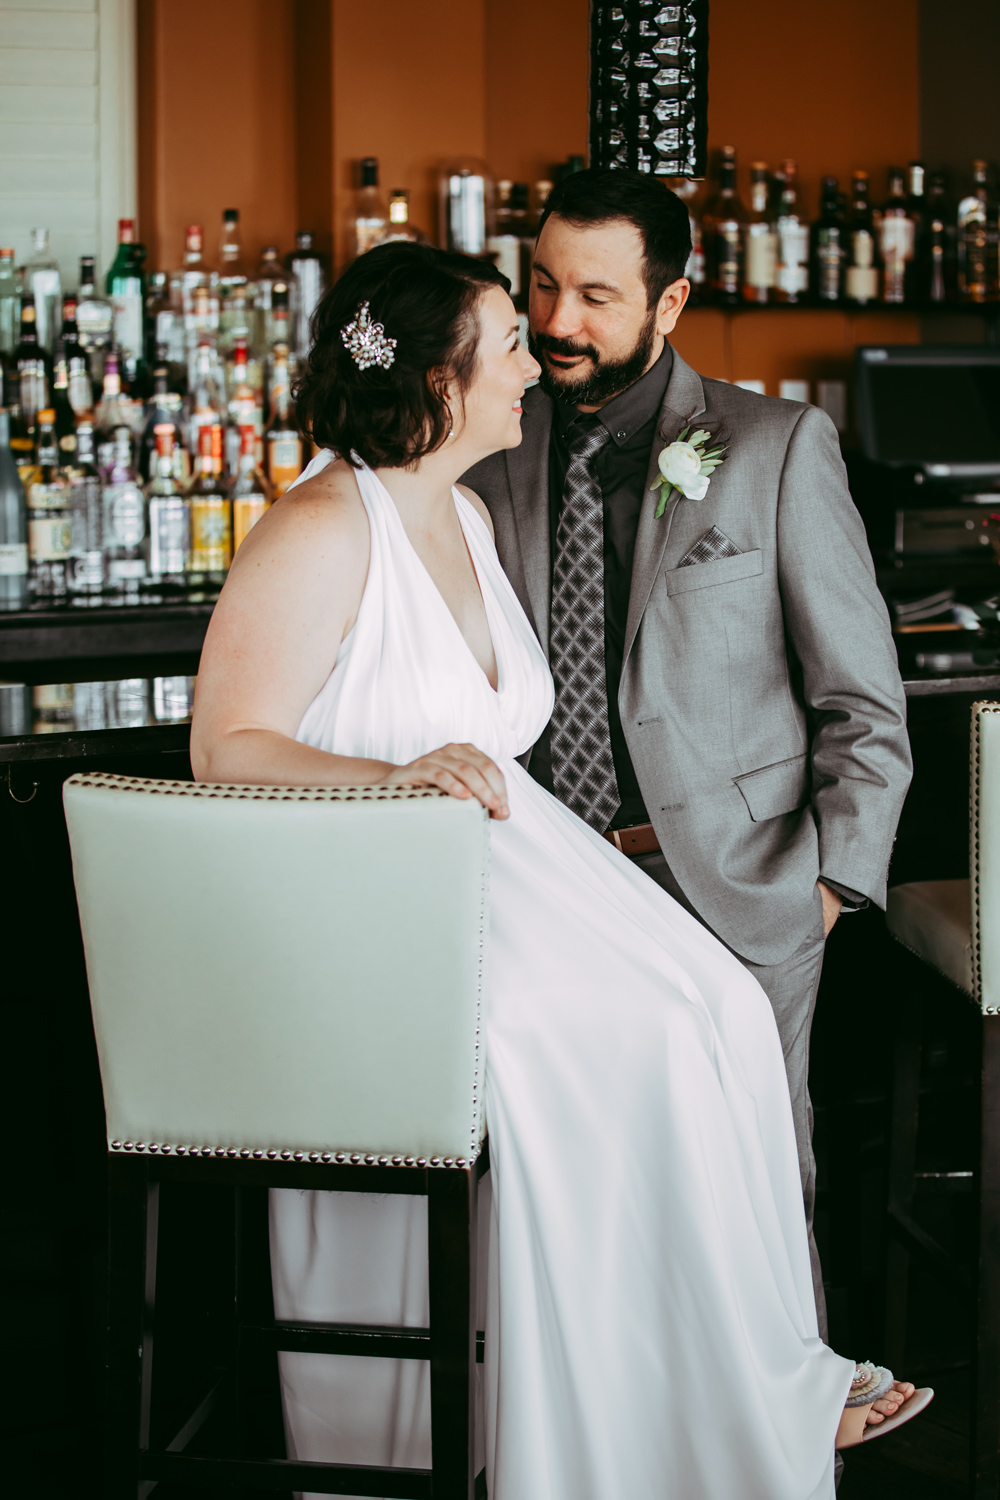 Bride and groom enjoying a moment together before the wedding ceremony at a bar in Oklahoma City.